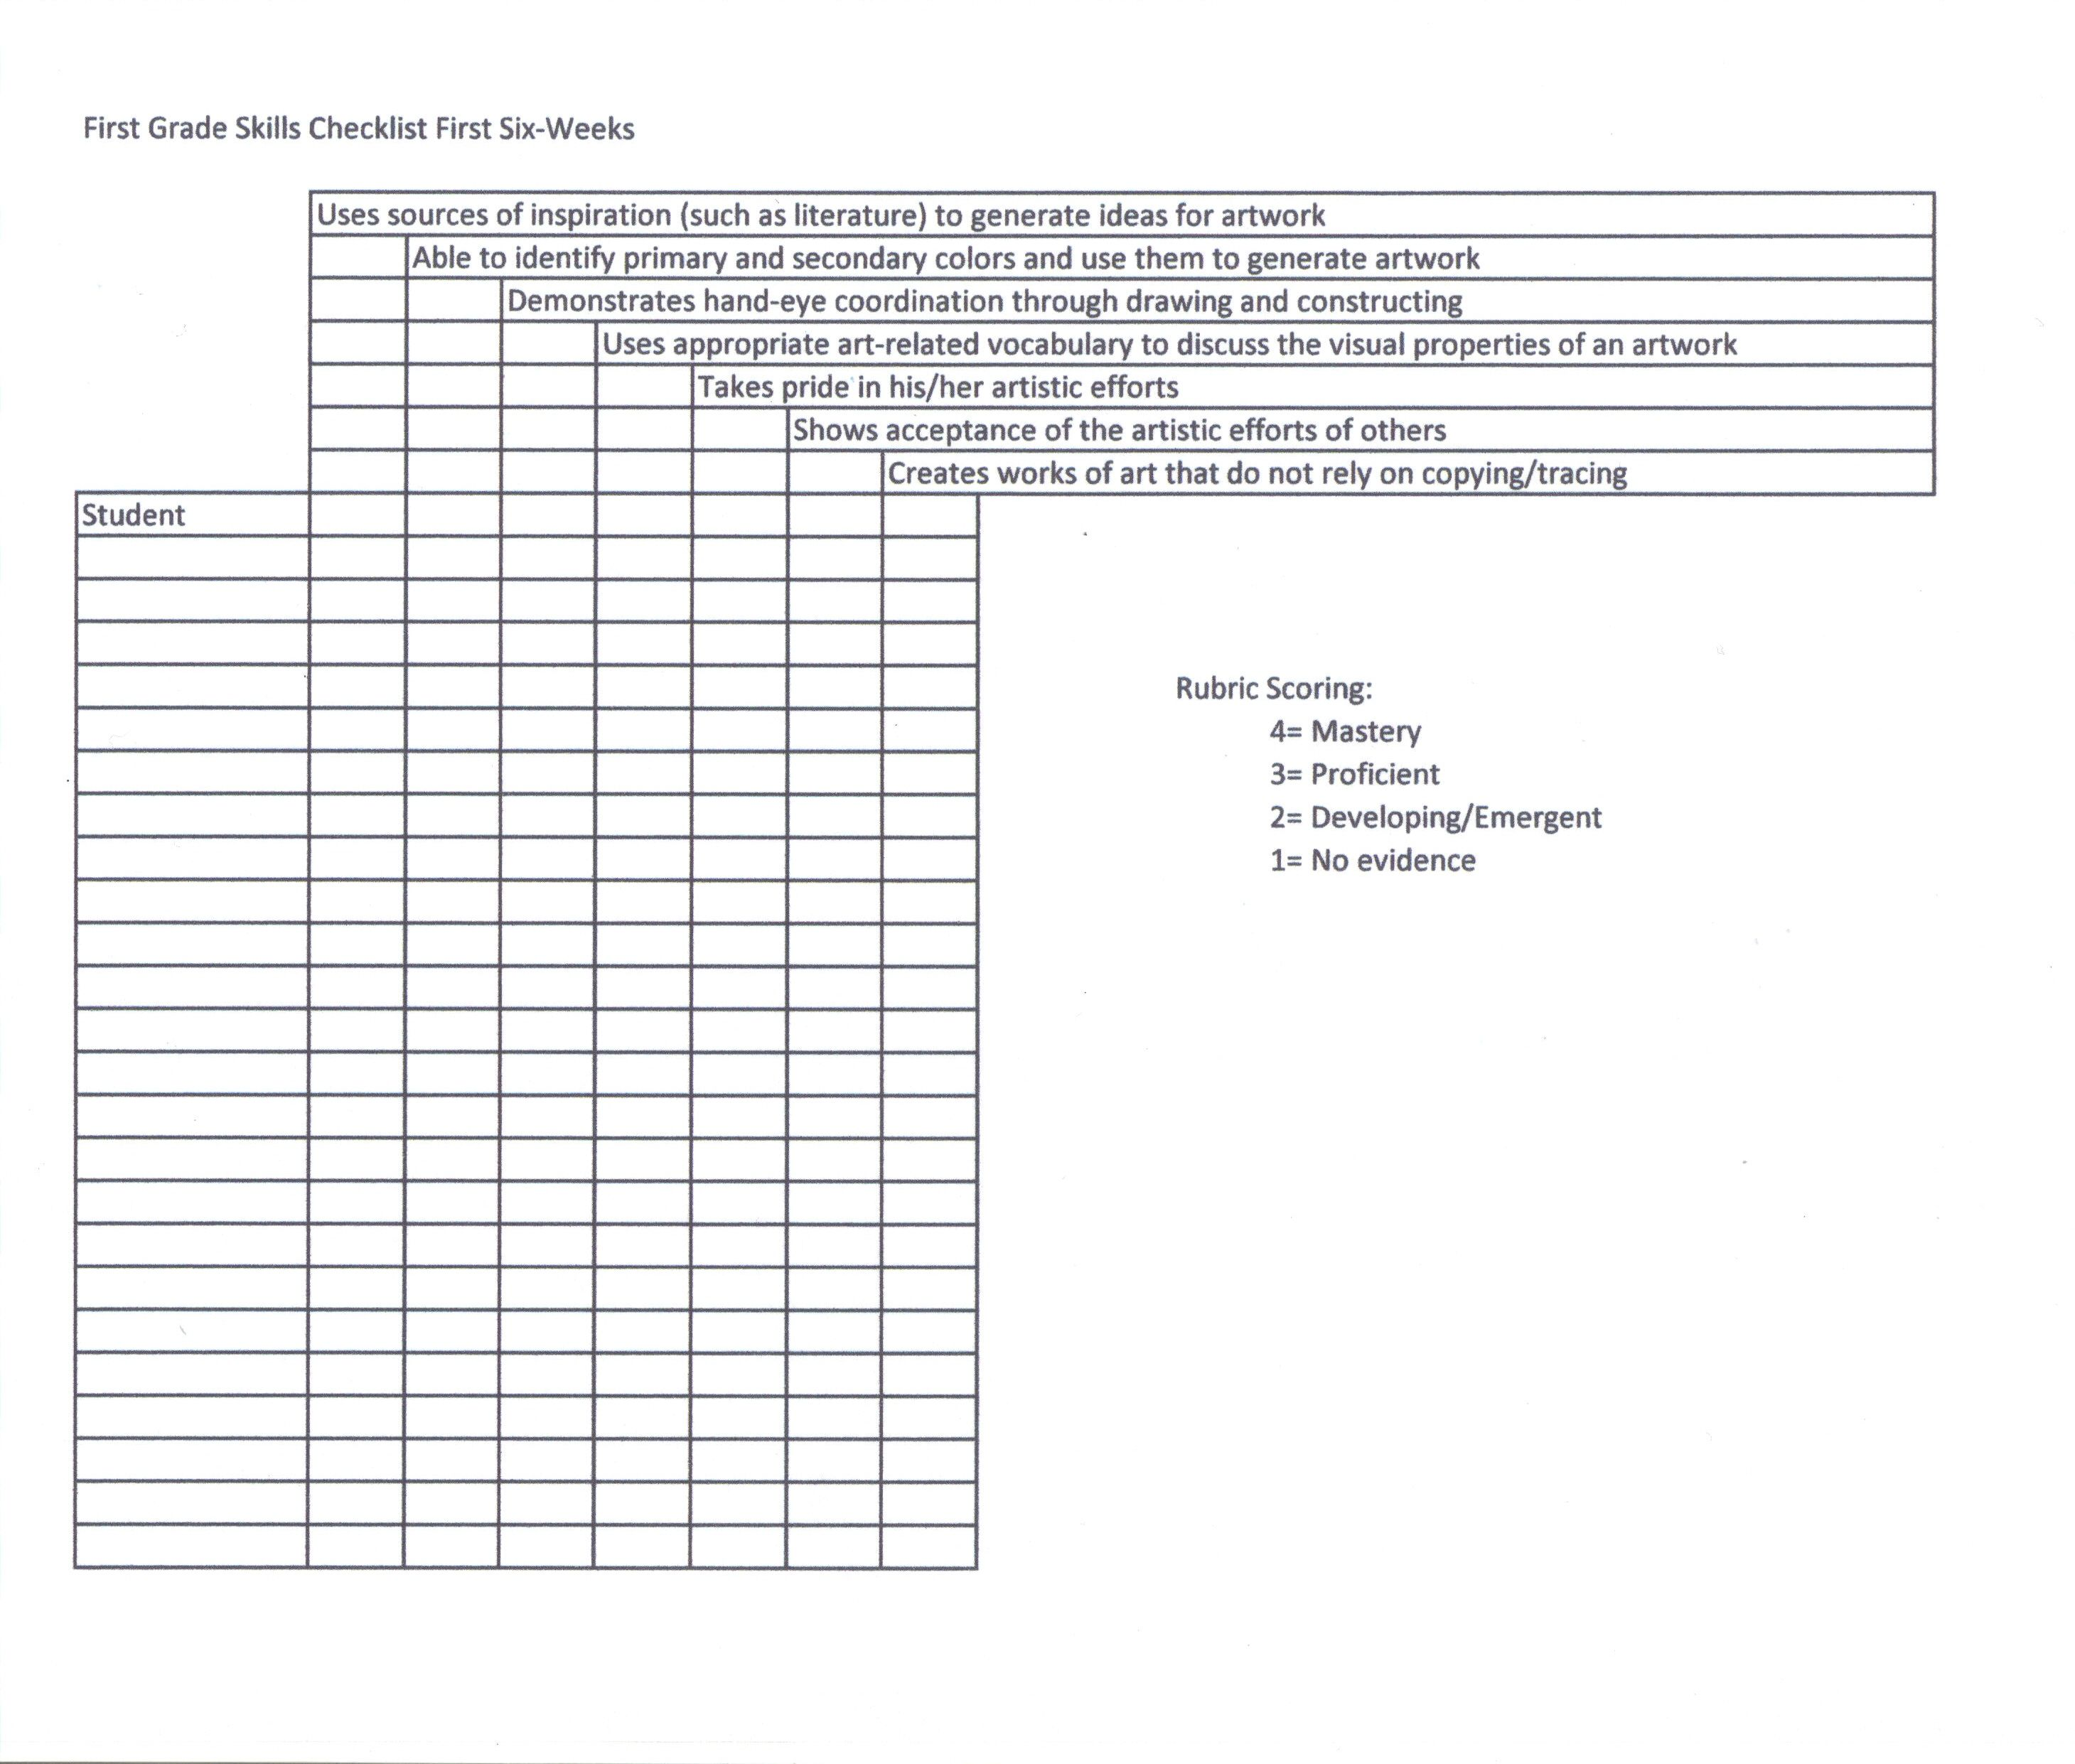 This Is A Skills Checklist Rubric I Created To Assess My